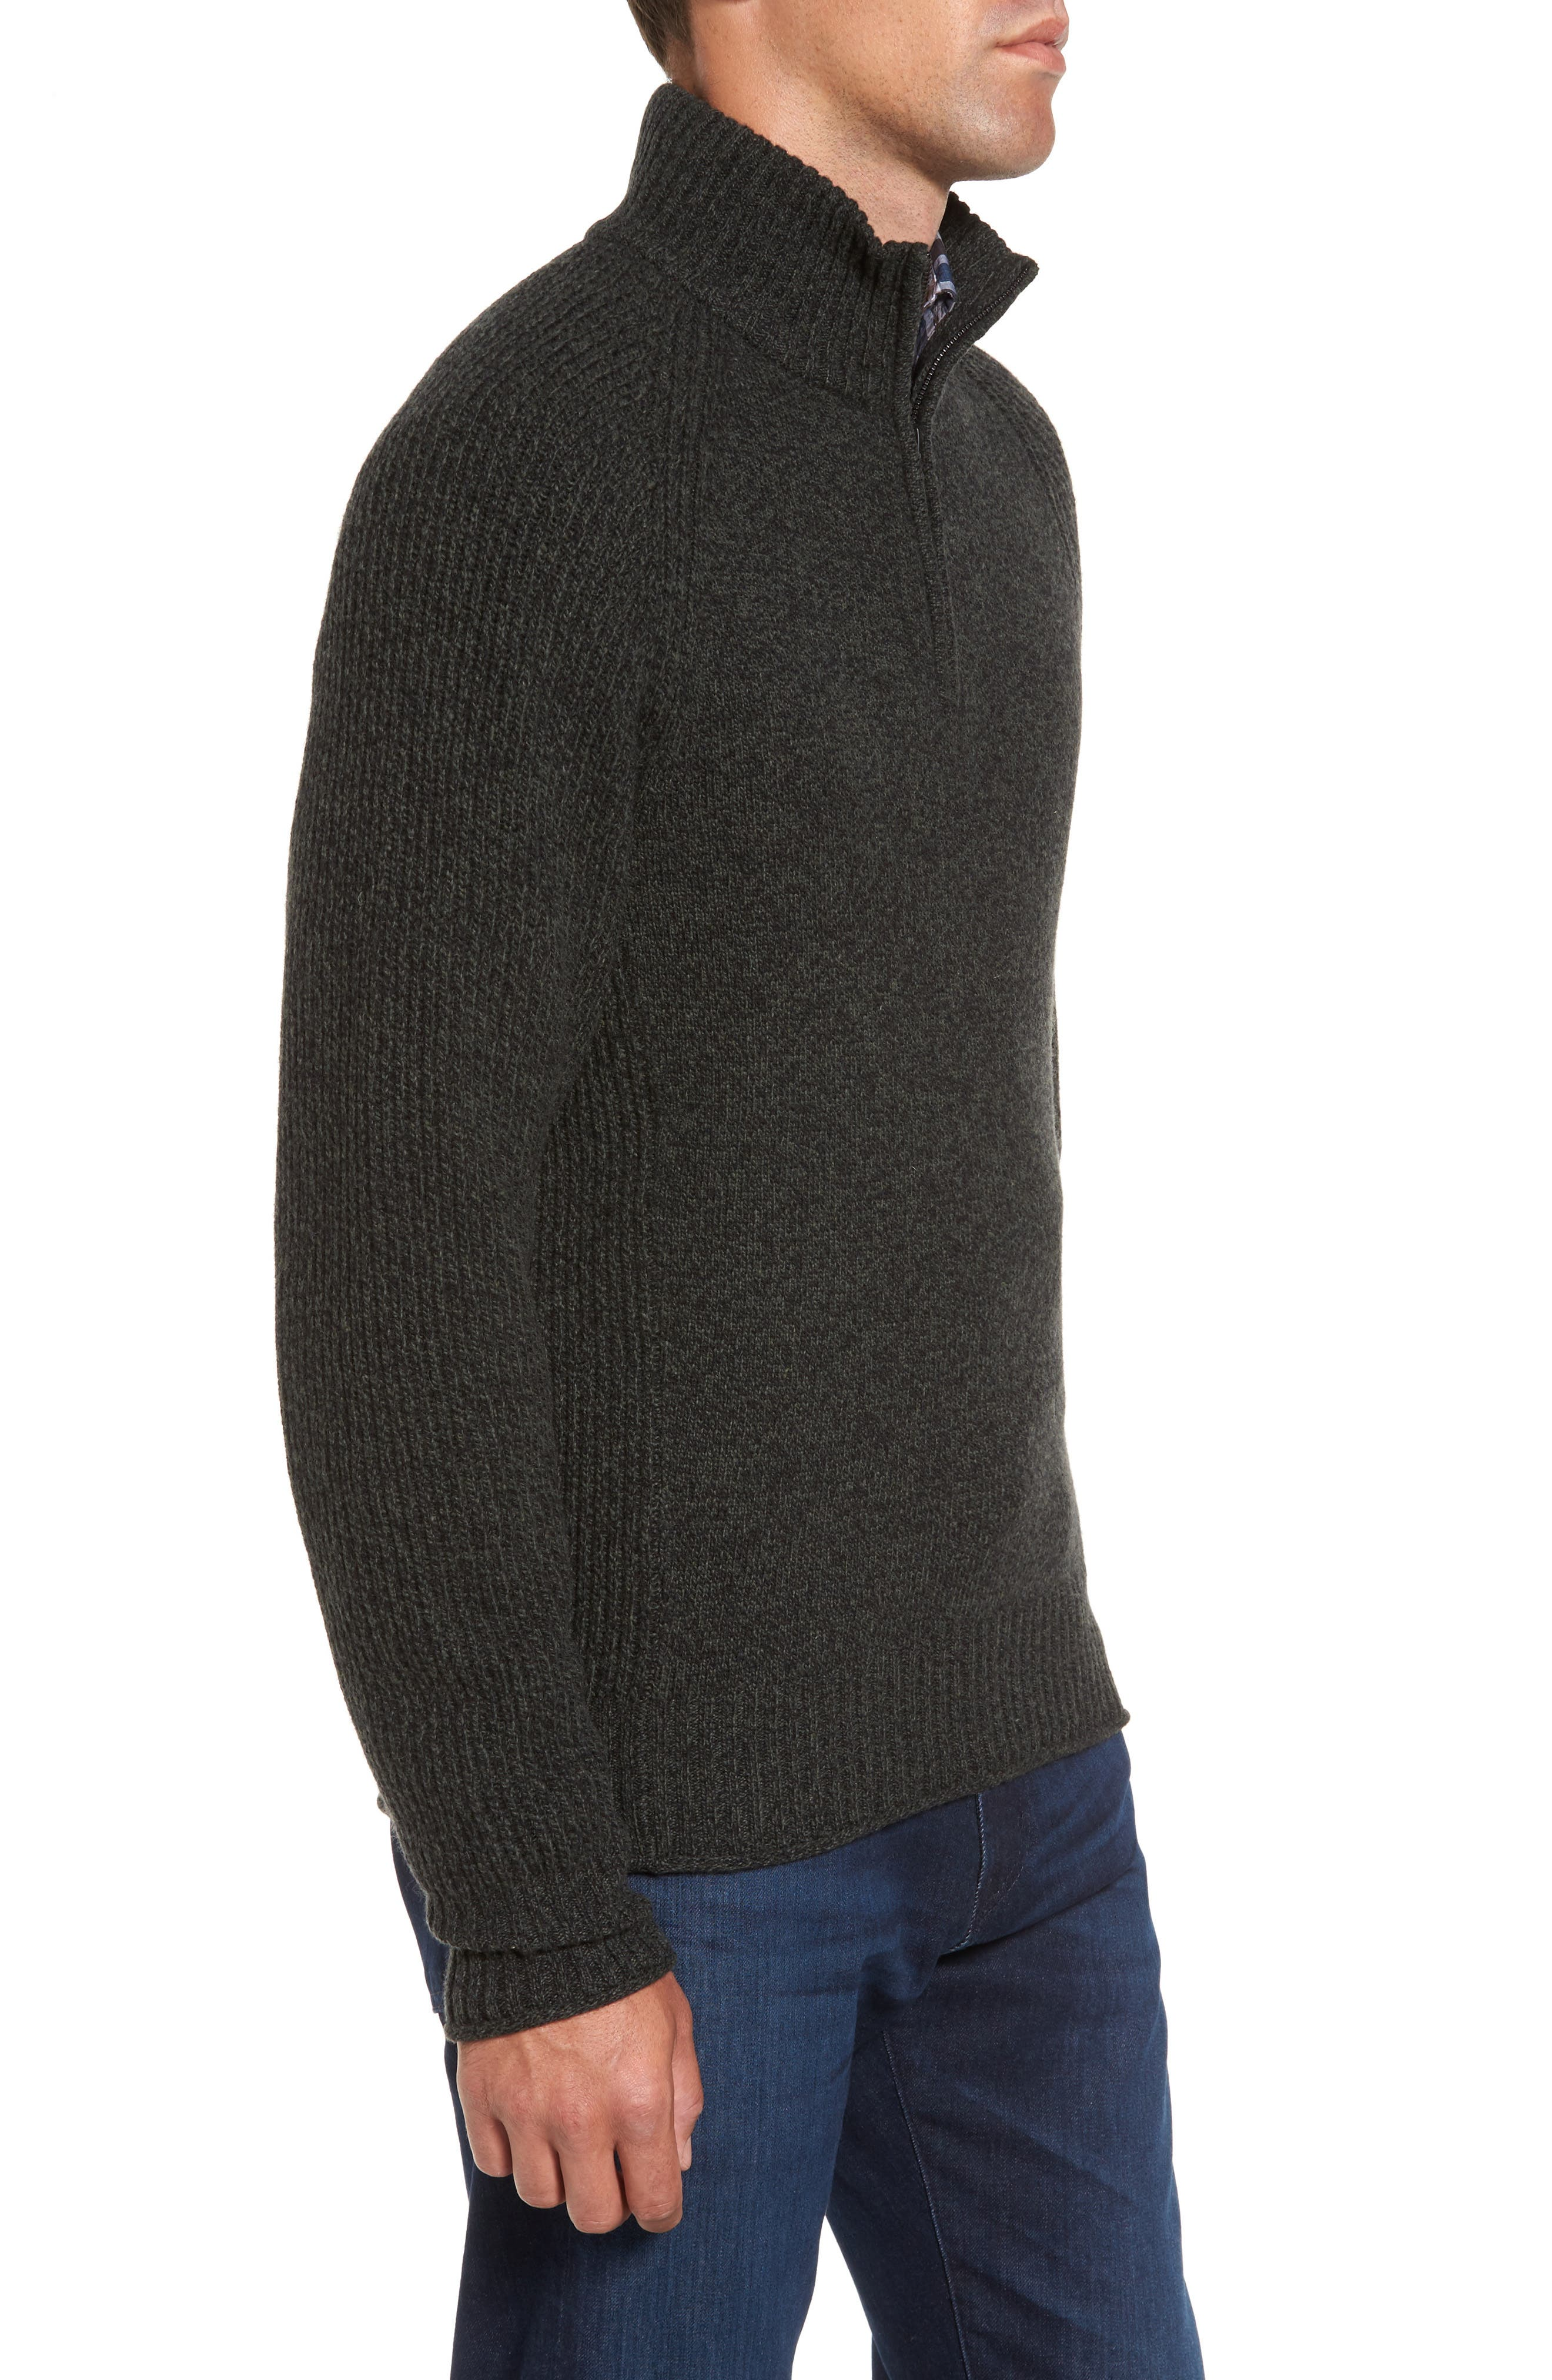 Stredwick Lambswool Sweater,                             Alternate thumbnail 12, color,